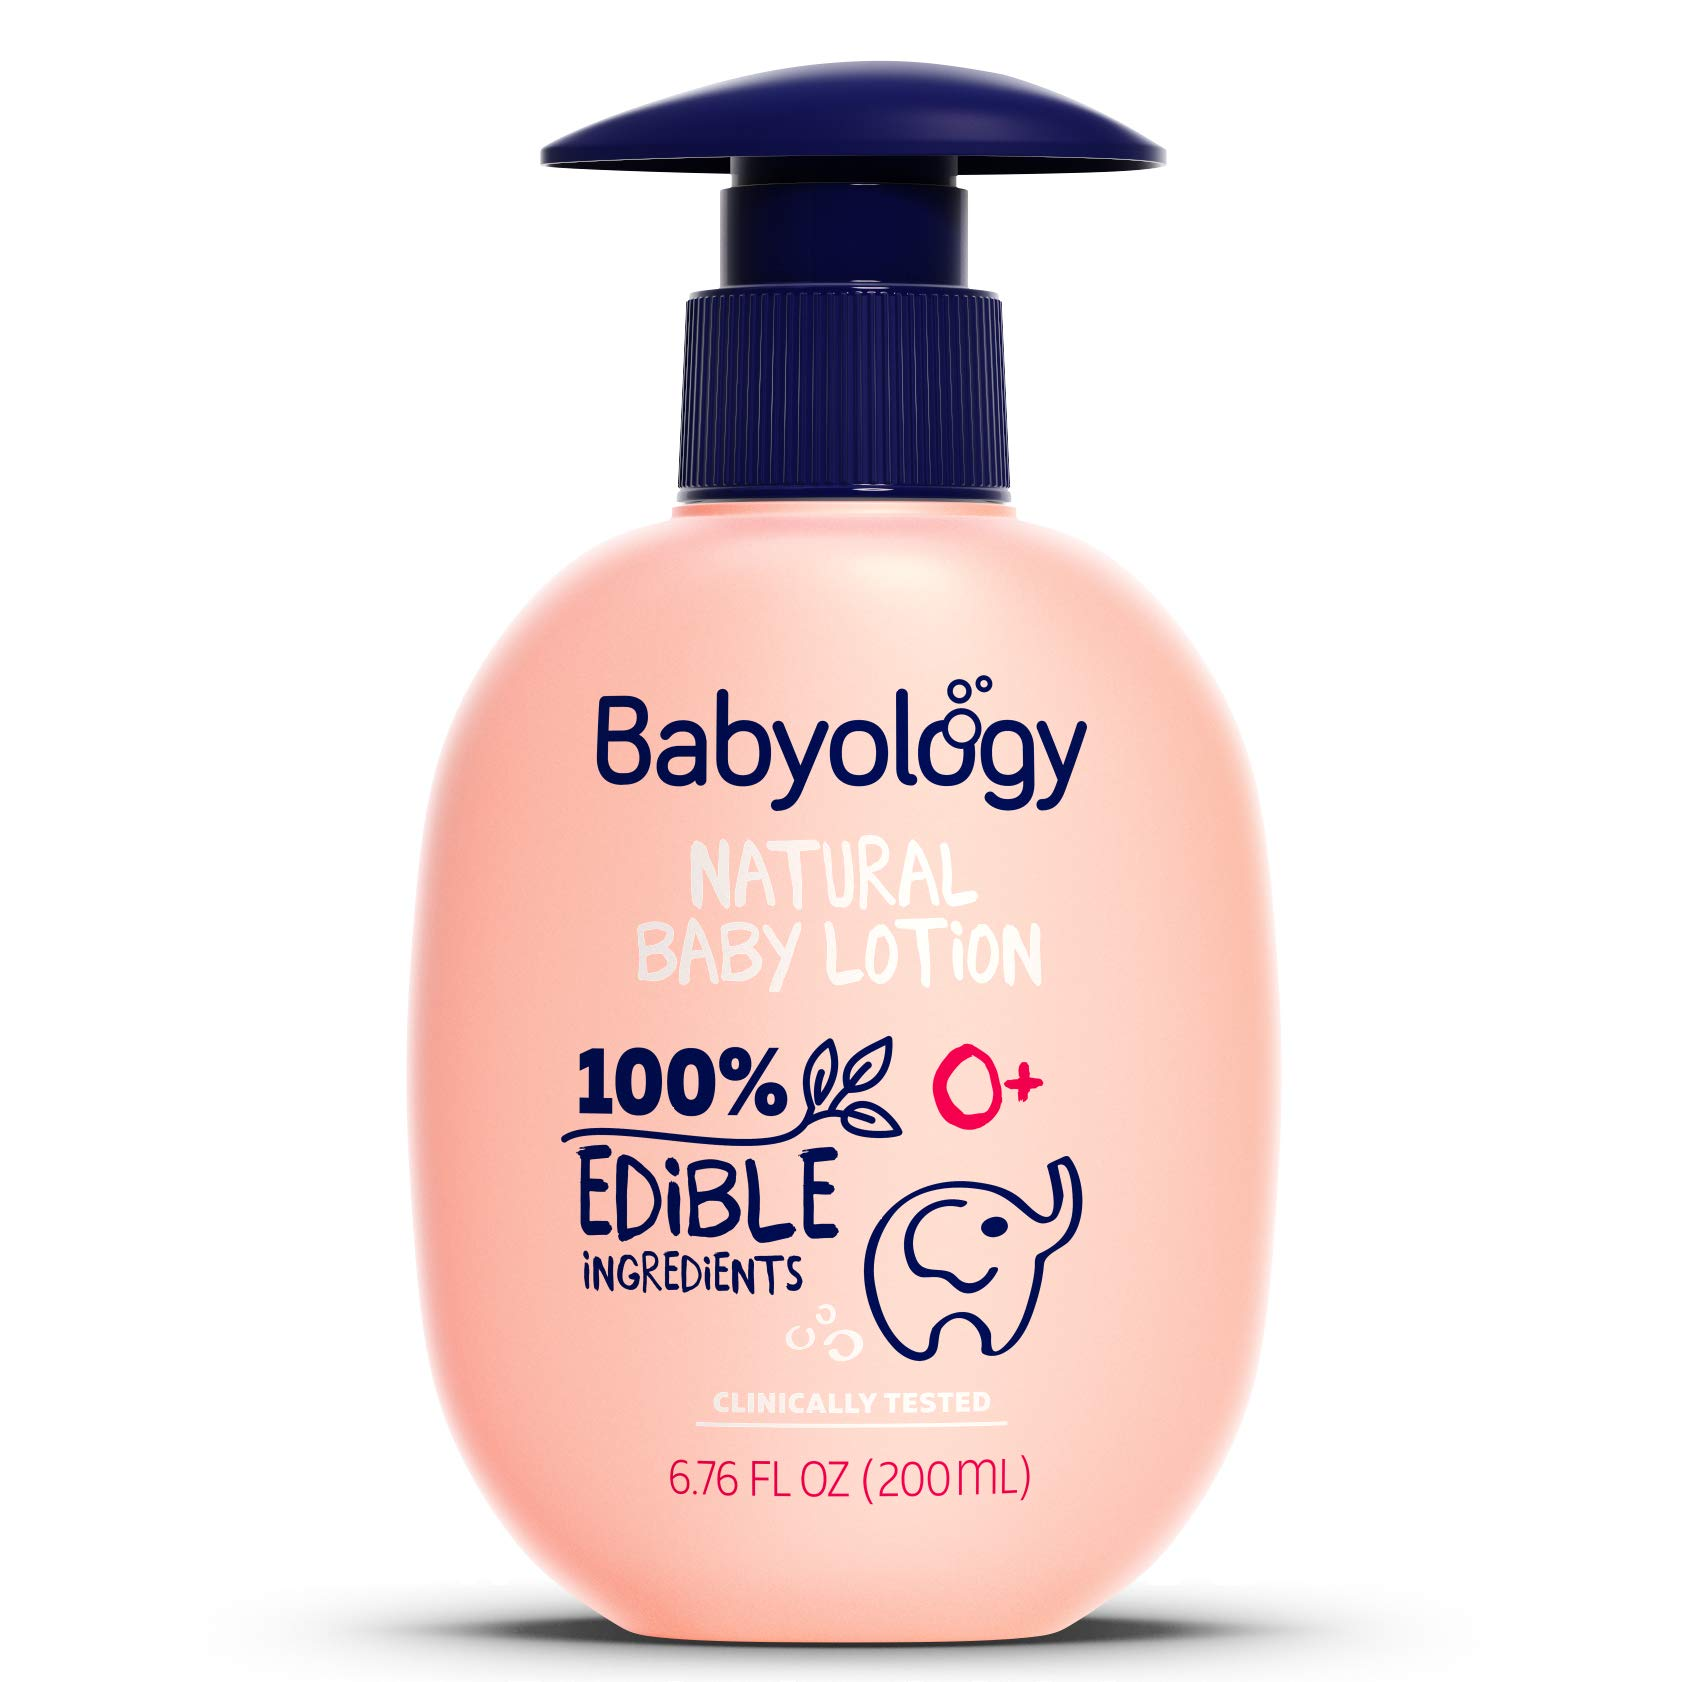 Babyology - 100% Edible Ingredients - Organic Baby Lotion - Clinically Tested - 6,67 FL. OZ - Calming & Rich Moisture for Sensitive Skin - Daily Care - Non-scented - Perfect Baby Shower Gift by Babyology